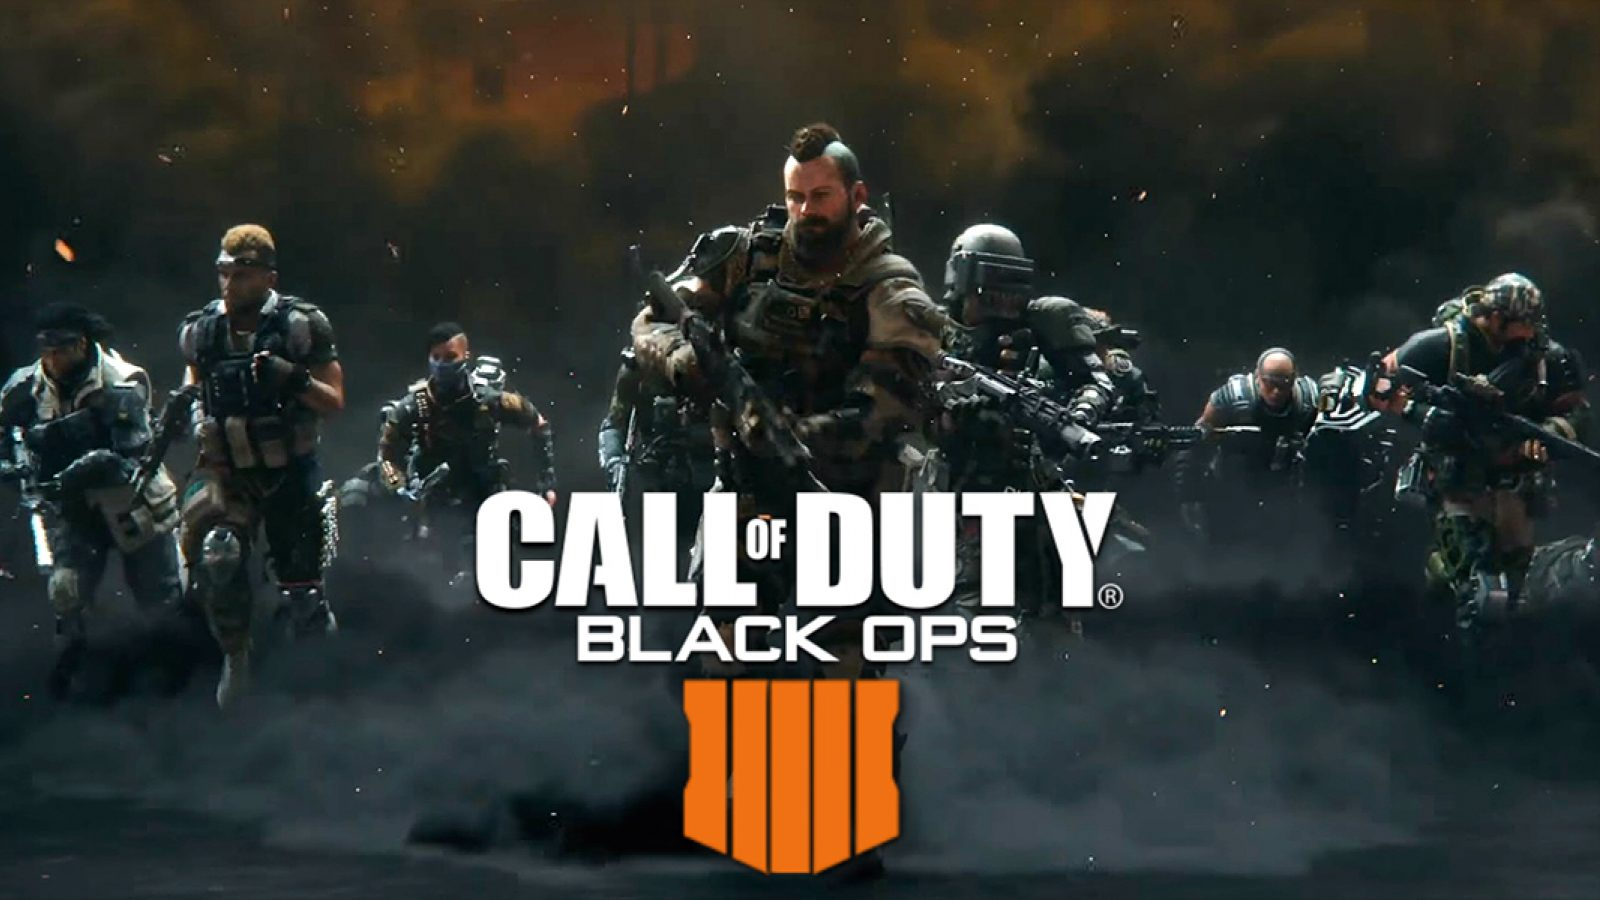 Games Released In 2020.Call Of Duty Black Ops 5 May Be Release In 2020